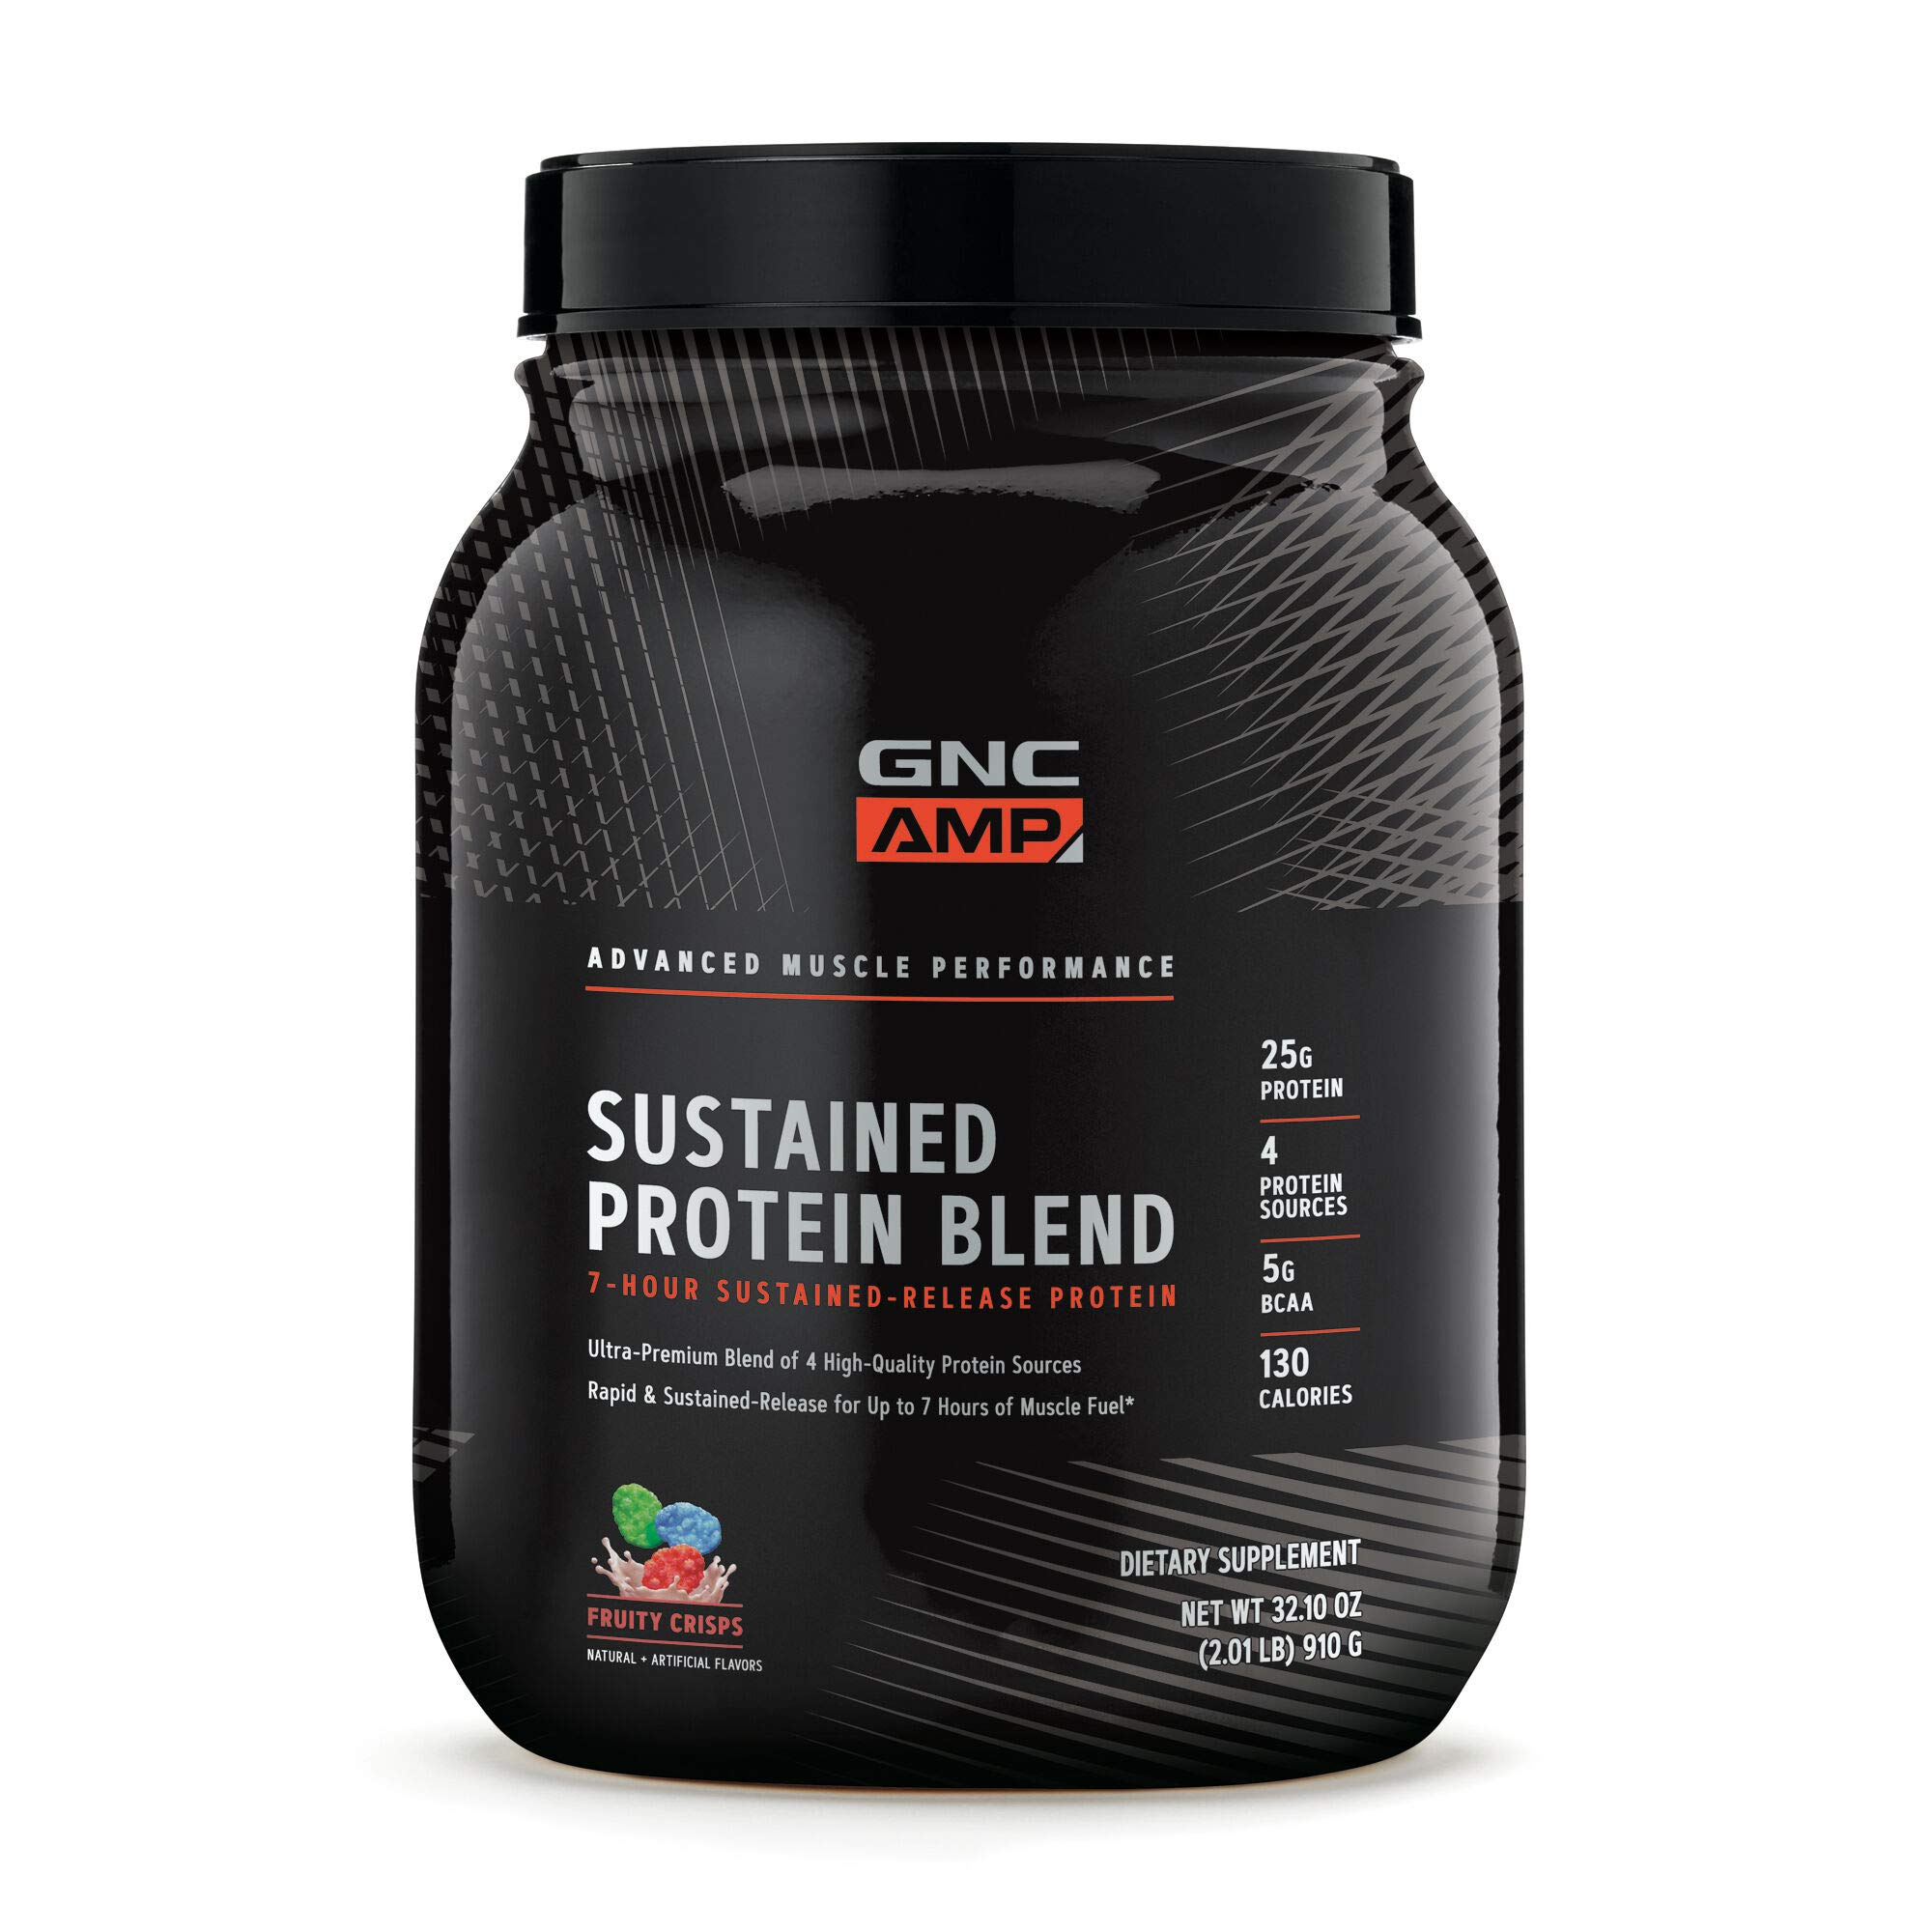 GNC AMP Sustained Protein Blend - Fruity Crisps, 28 Servings, High-Quality Protein Powder for Muscle Fuel*